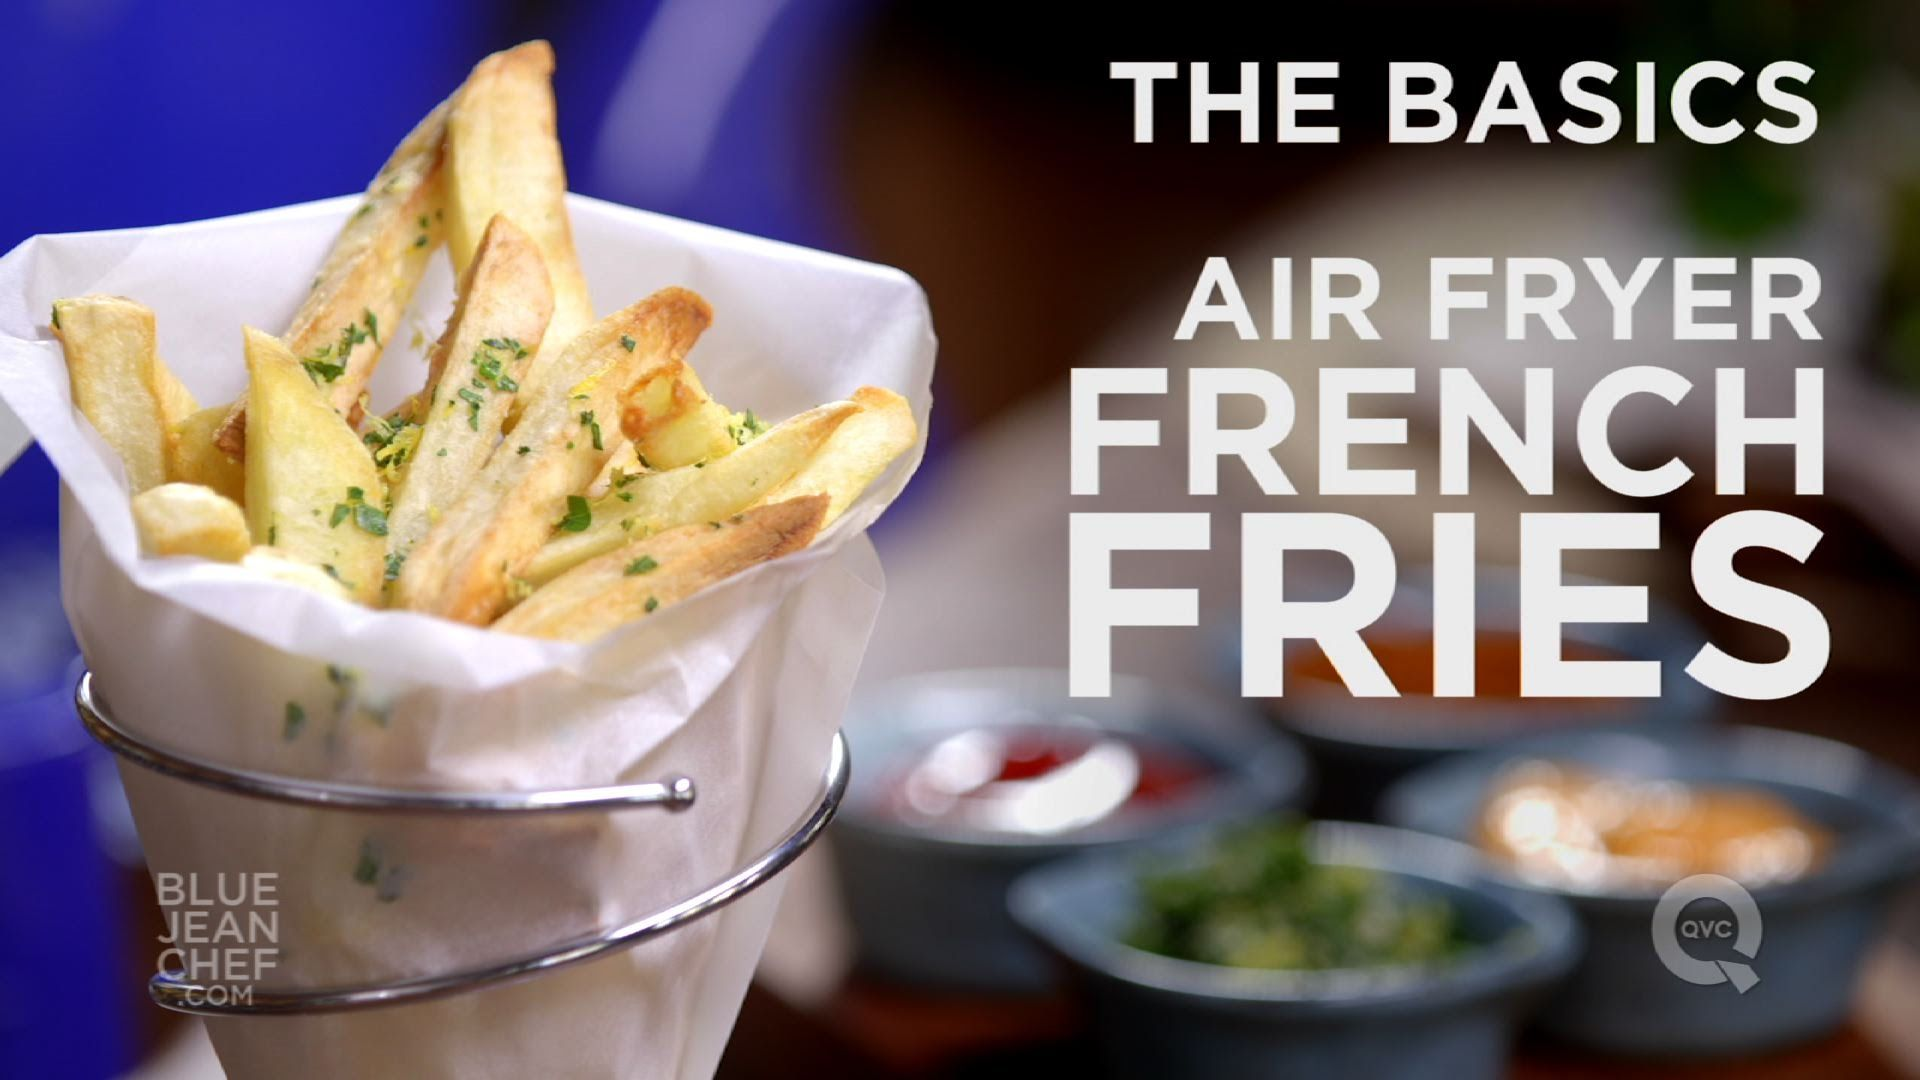 Blue apron qvc - How To Make Air Fryer French Fries The Basics On Qvc